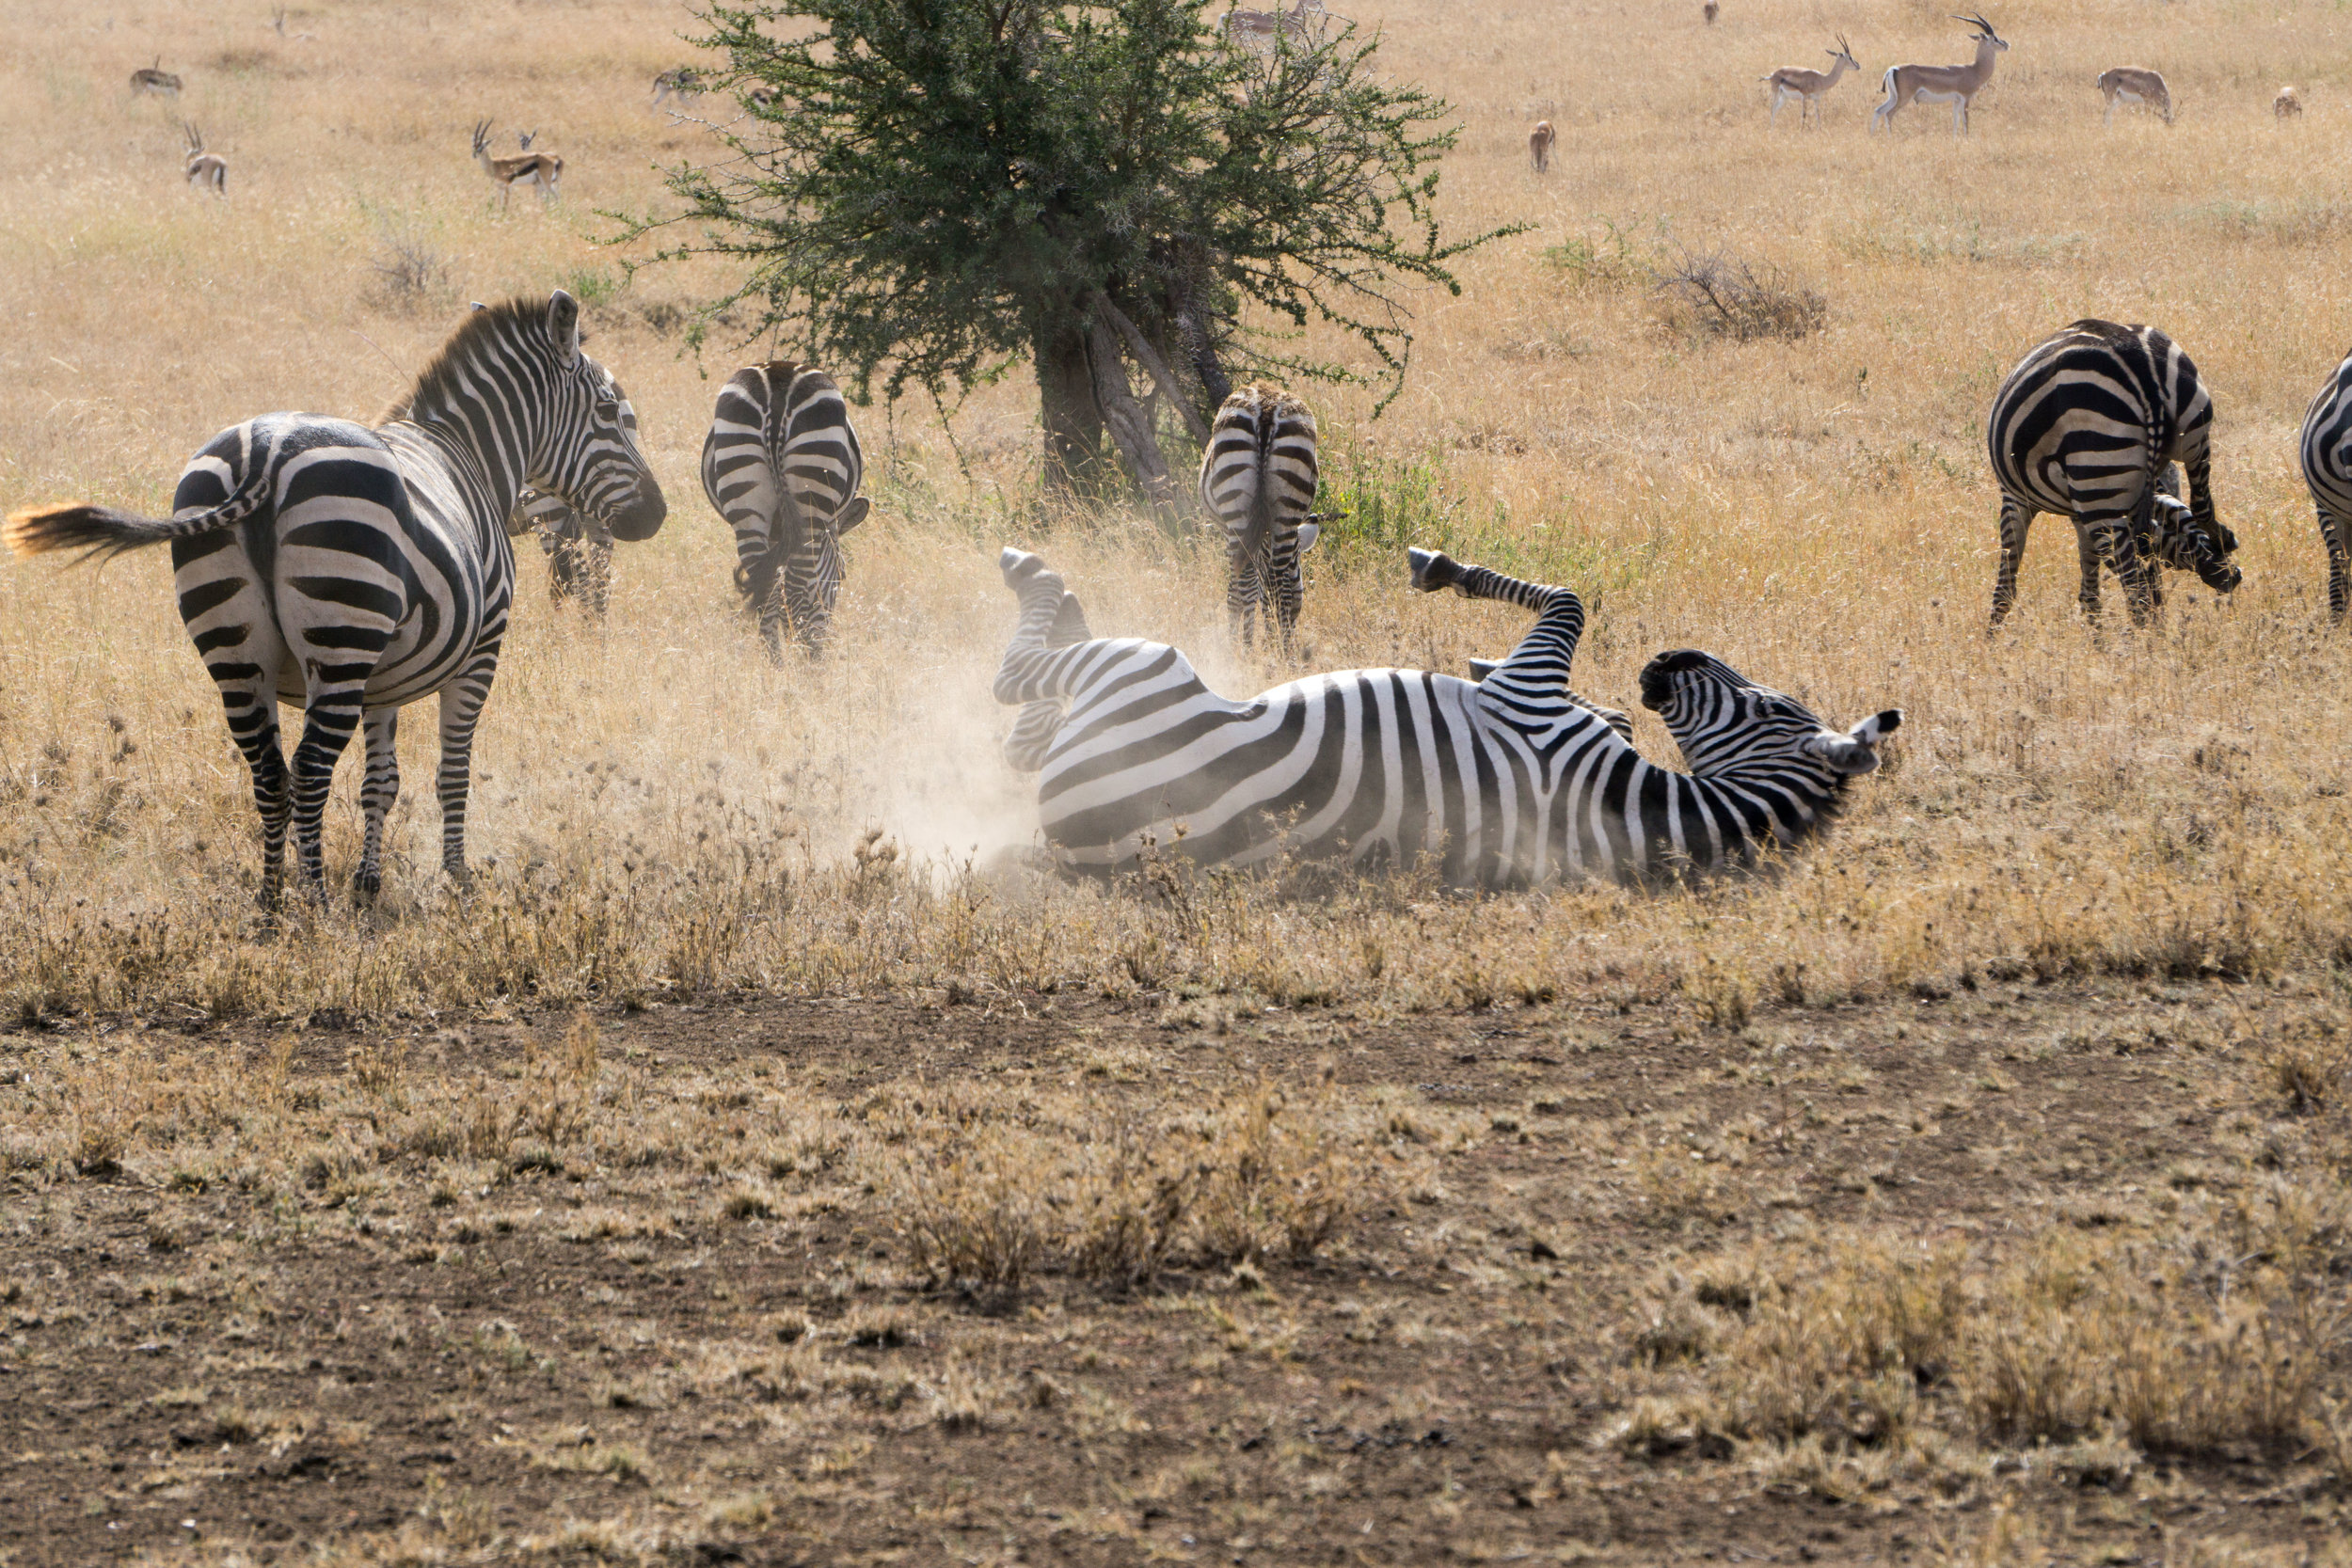 When a zebra has an itch - they scratch it.